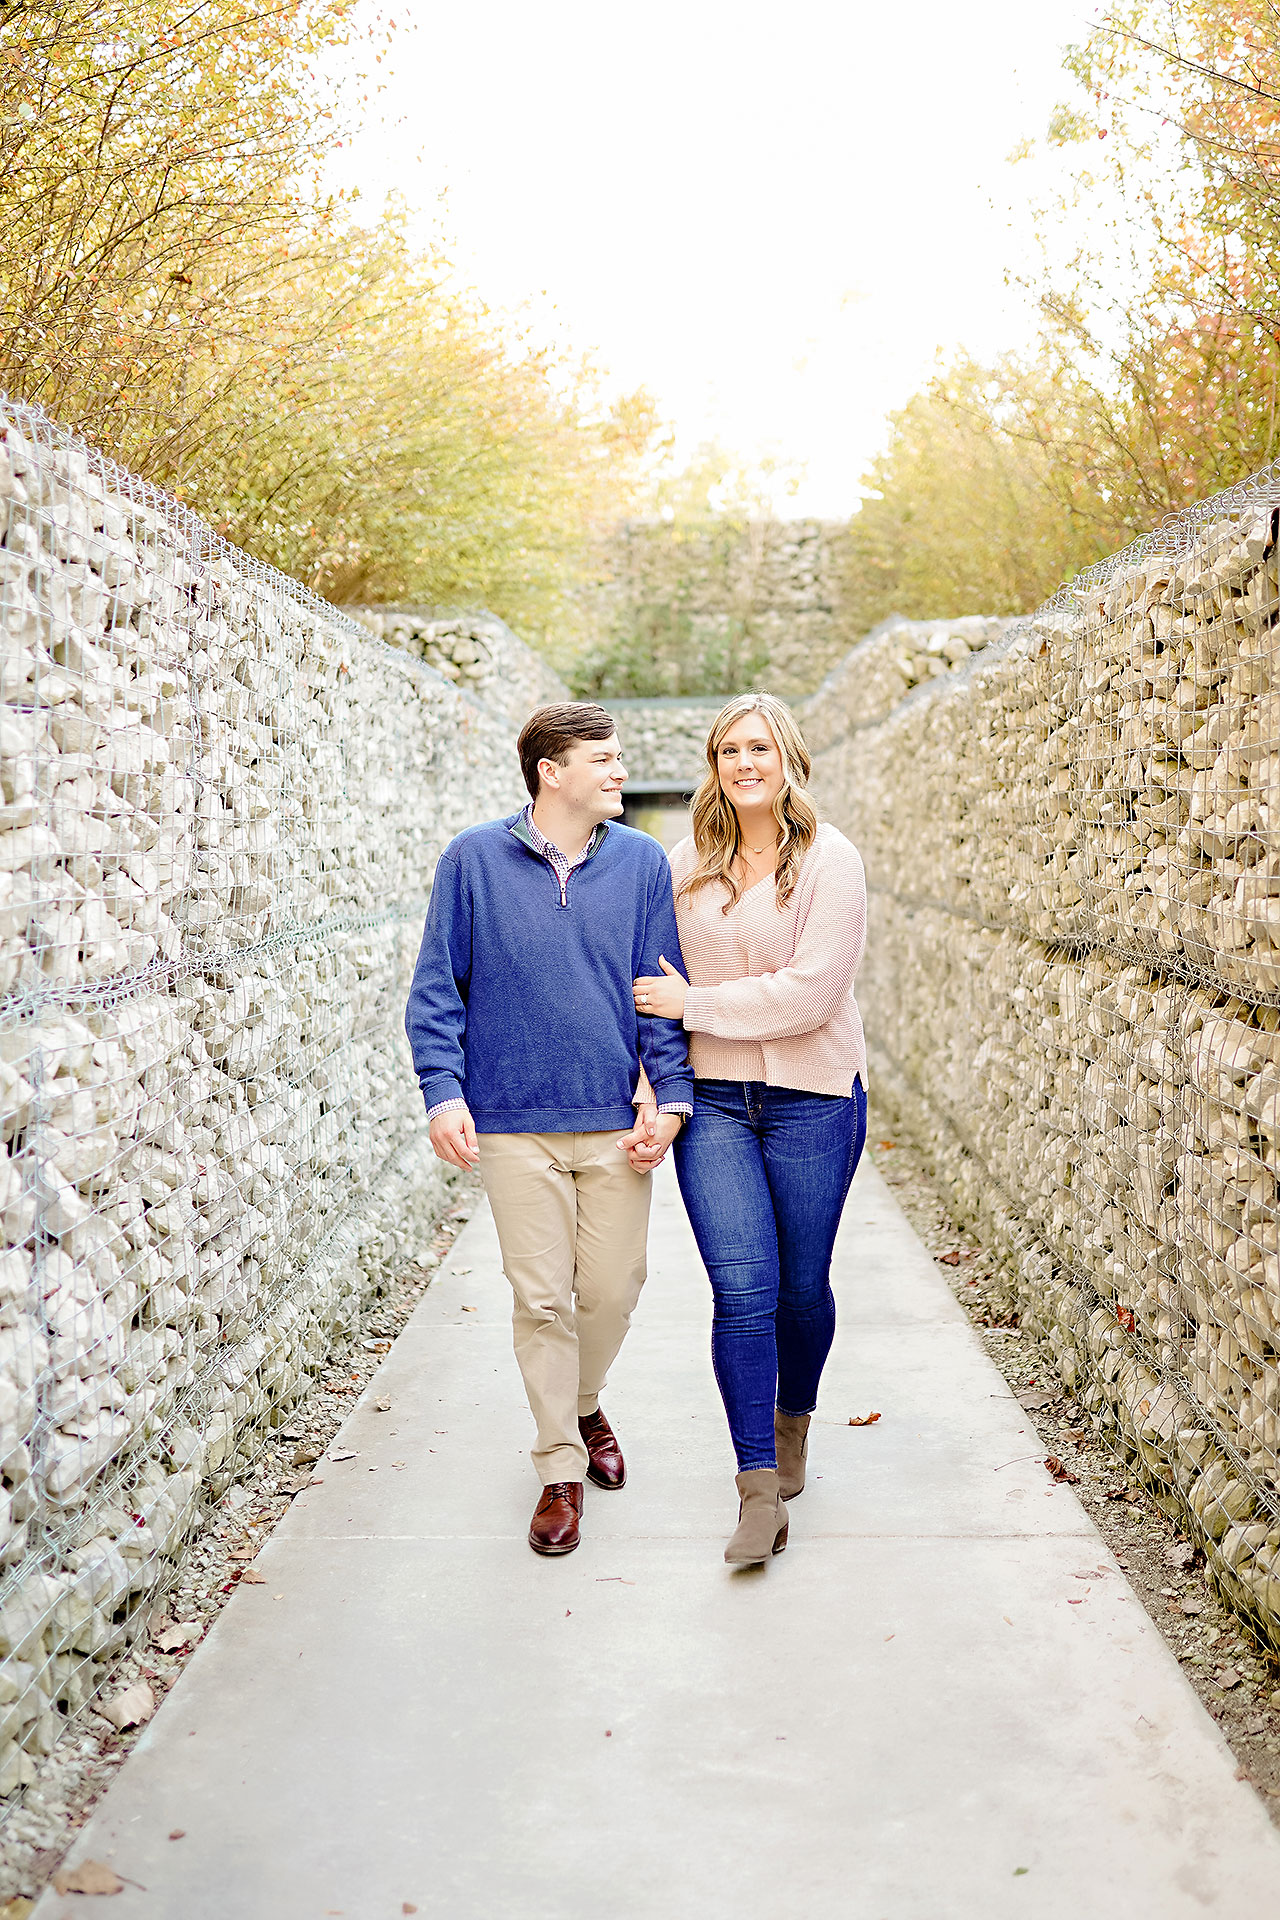 Taylor Case Newfields Engagement Session 127